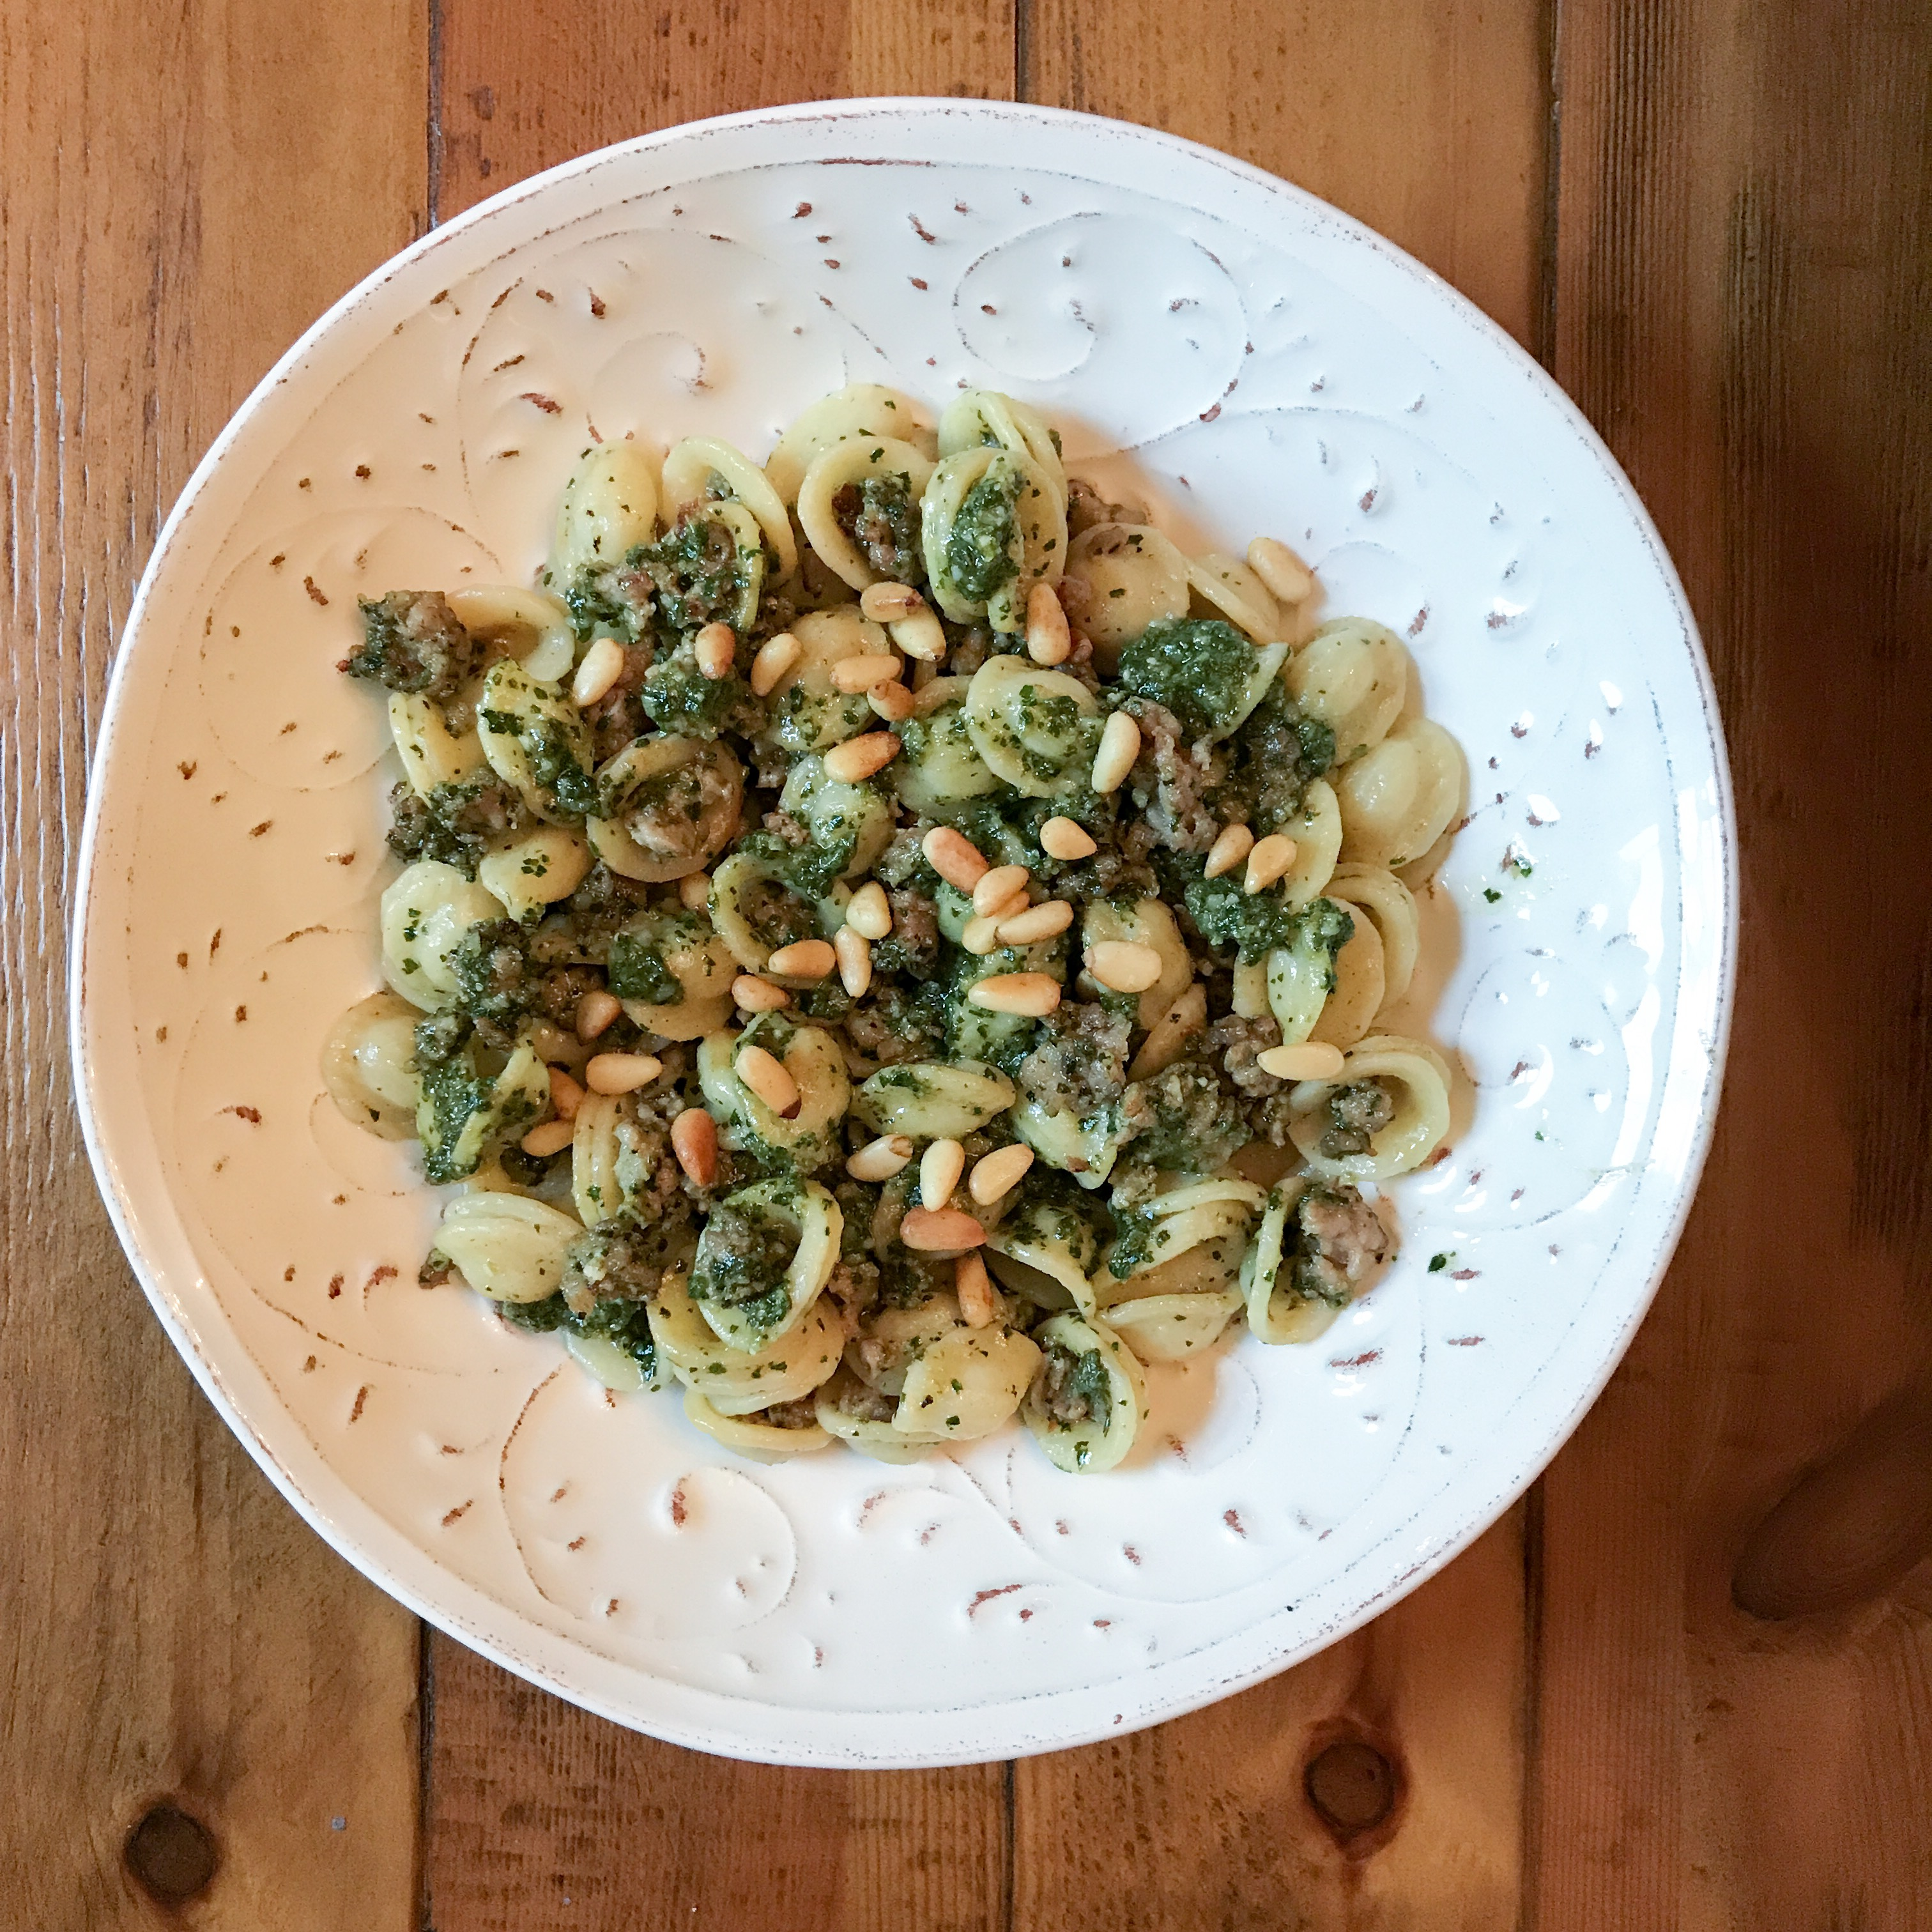 Orechiette with Pesto and Crumbled Sausage